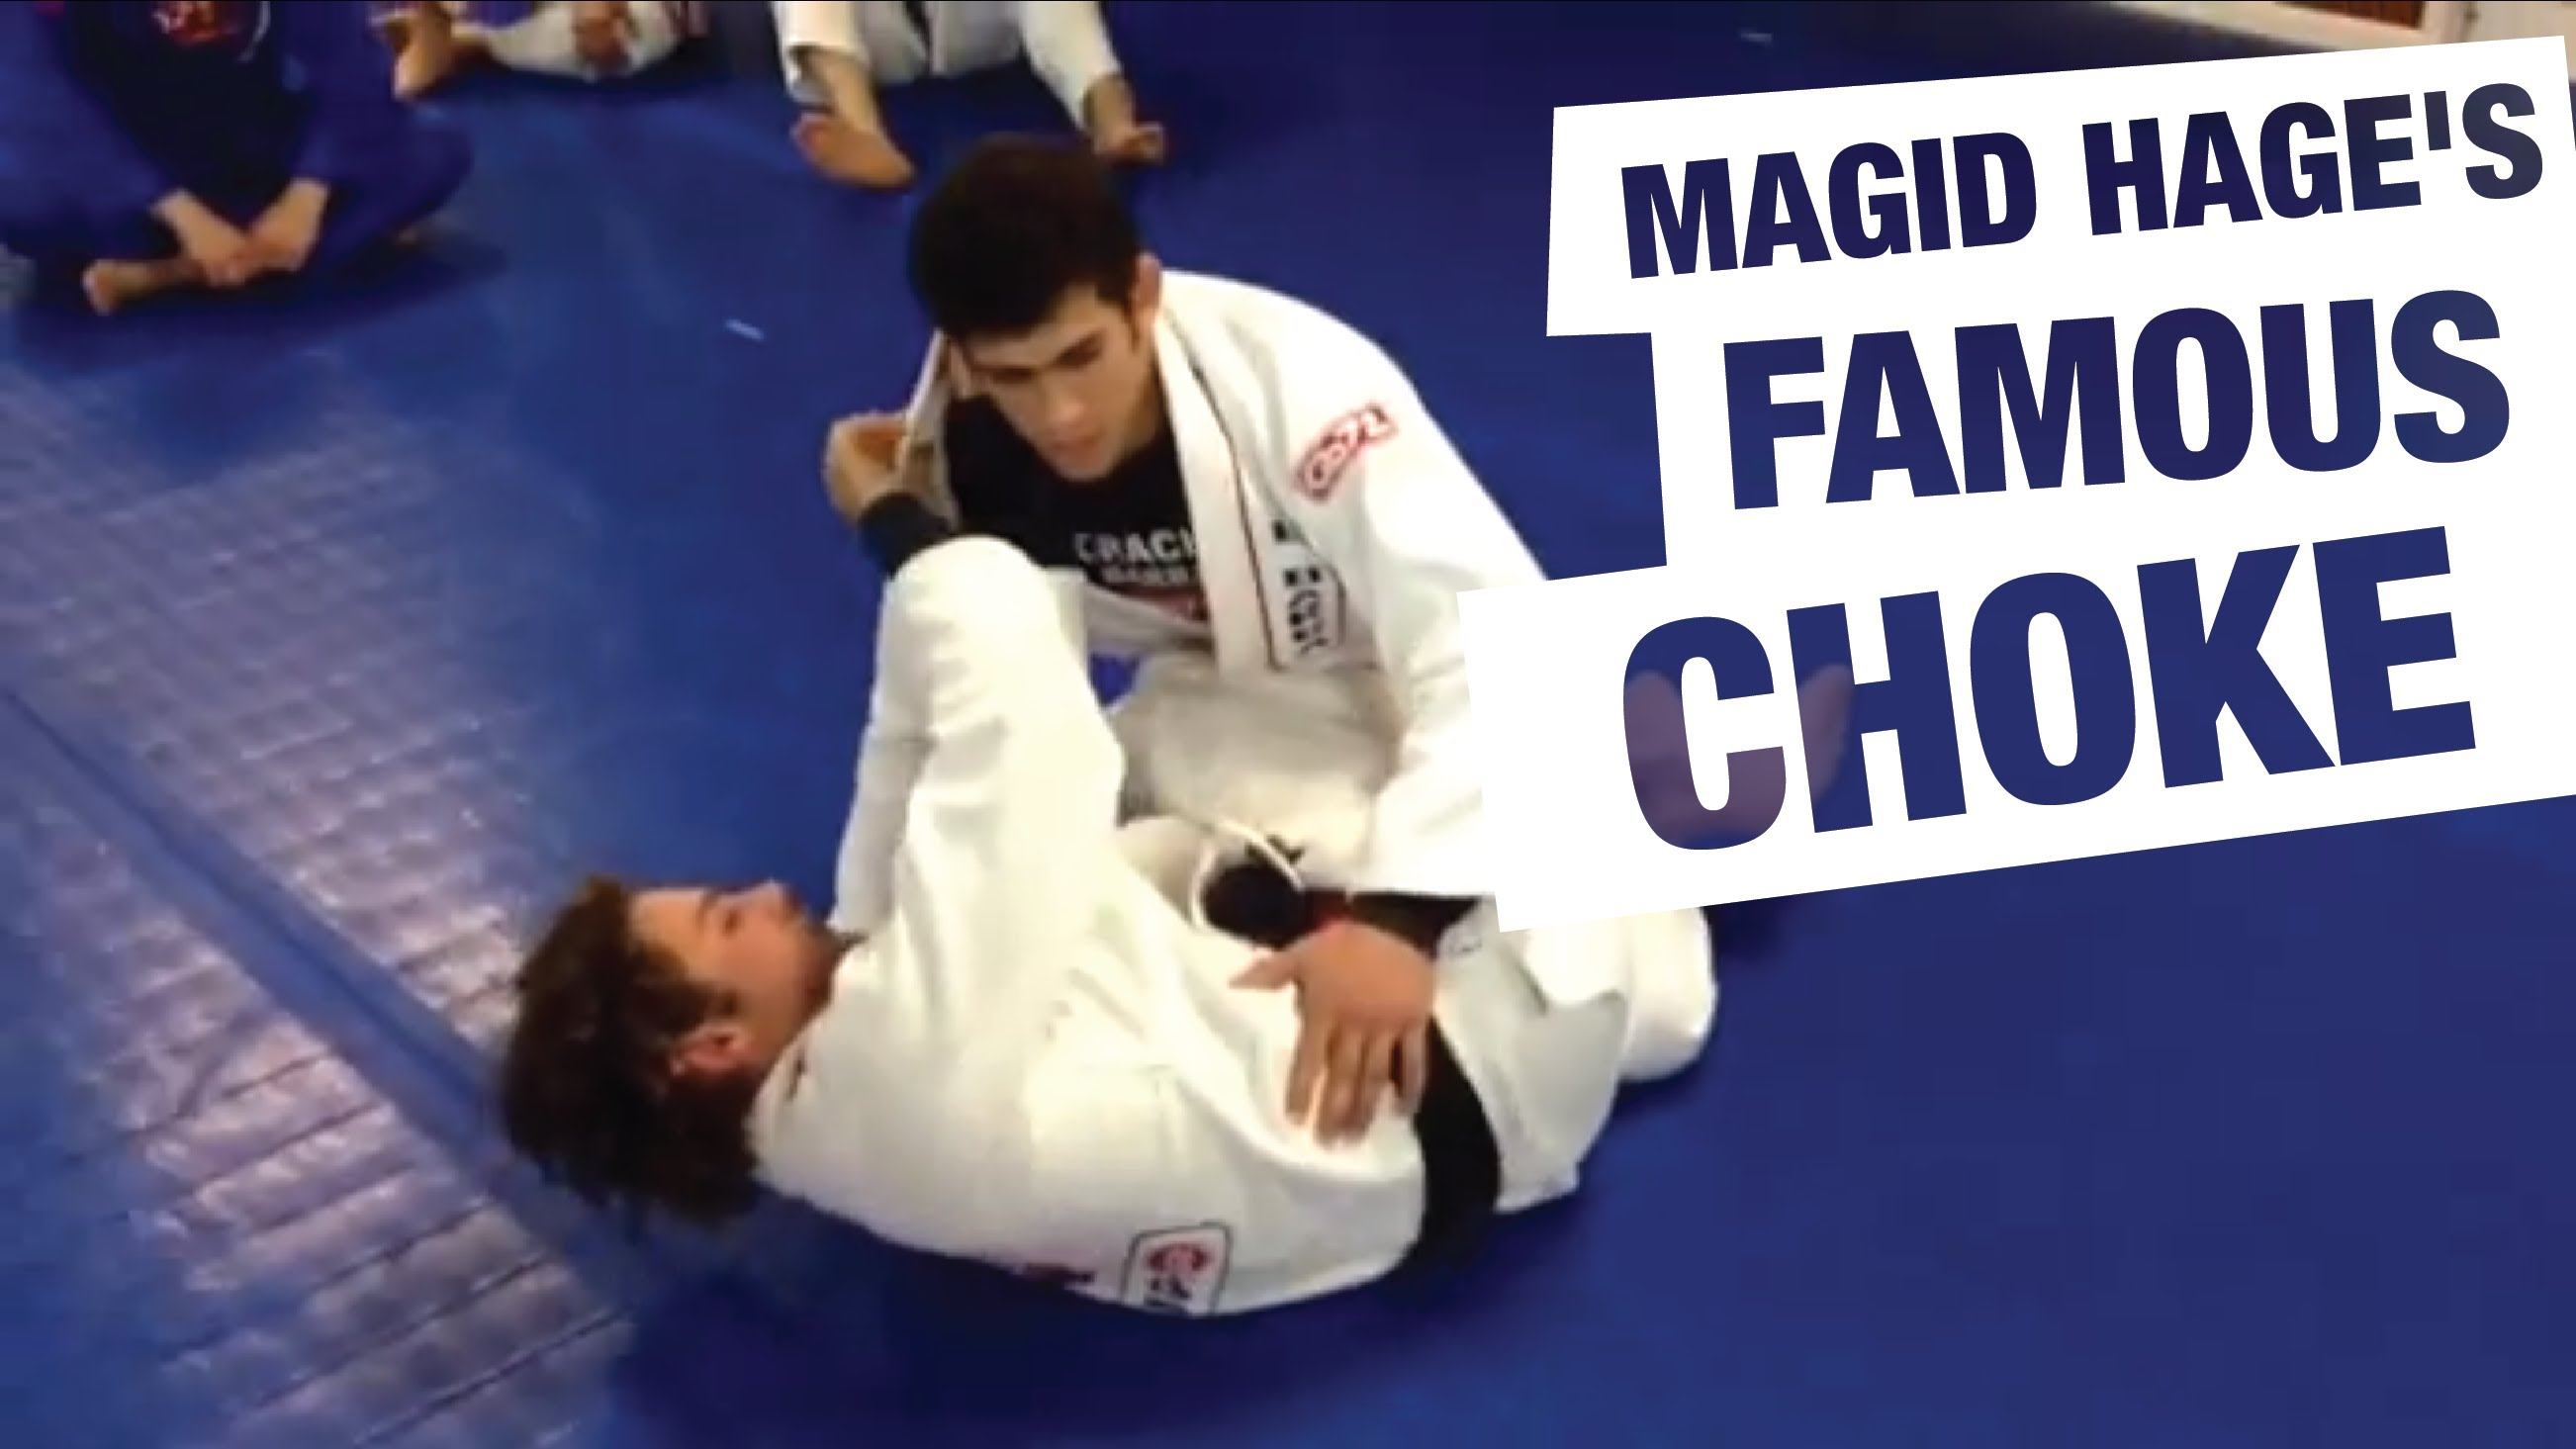 Baseball Choke from Half Guard- Magid Hage